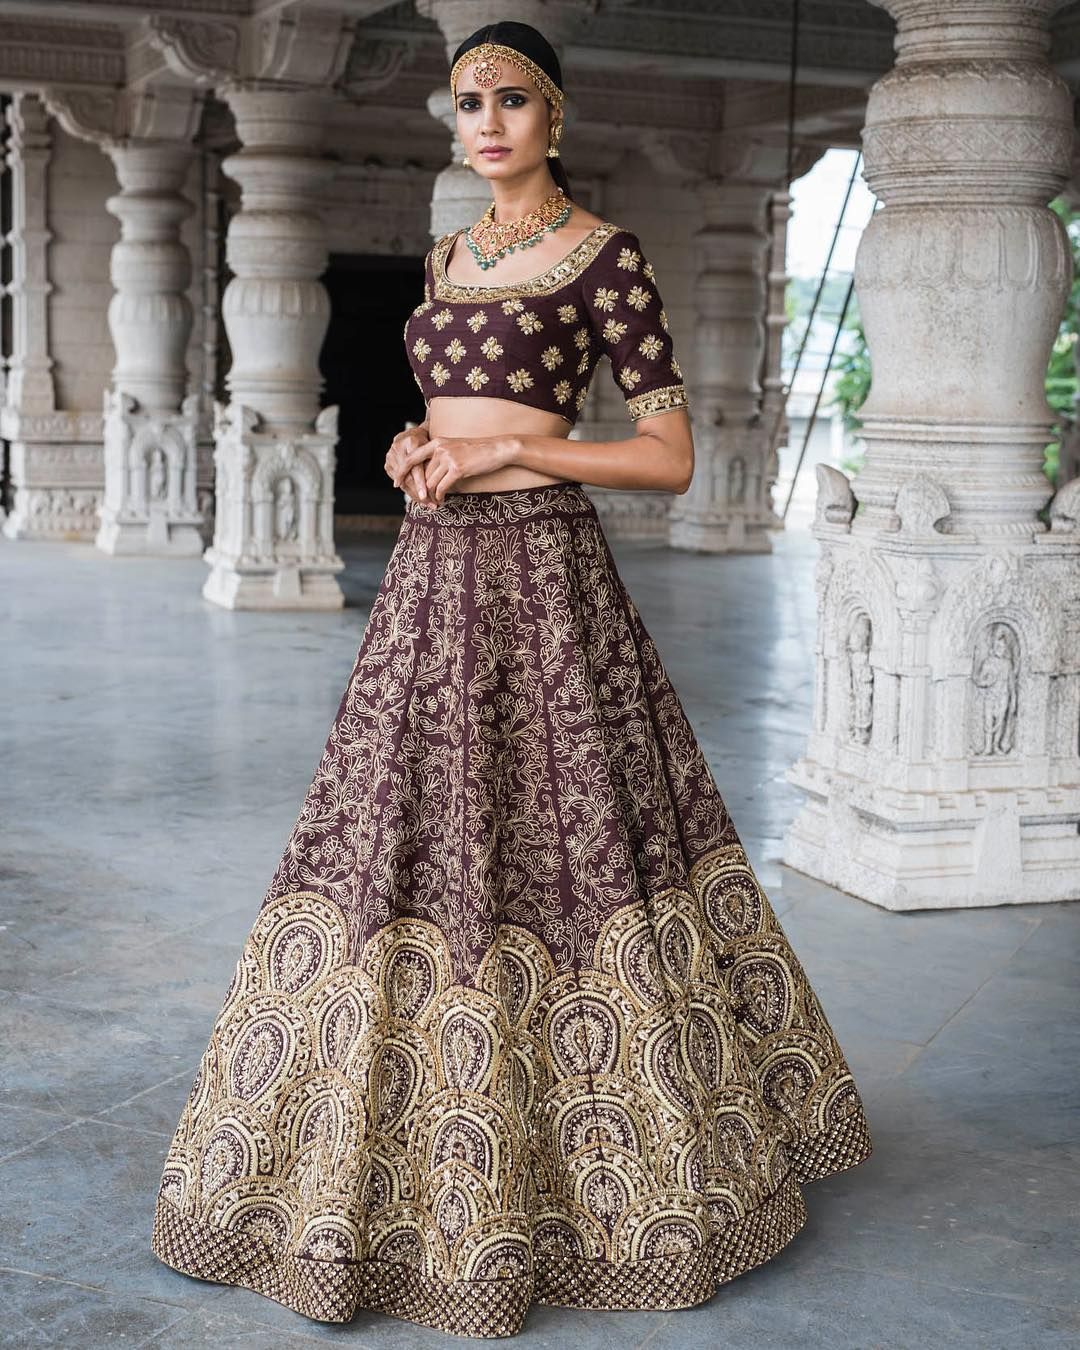 7f79c3a328 Stunning wine color lehenga and blouse with heavy hand embroidery work.  Taara ~ Meenakshi collection of Mrunalini Rao . 17 January 2018